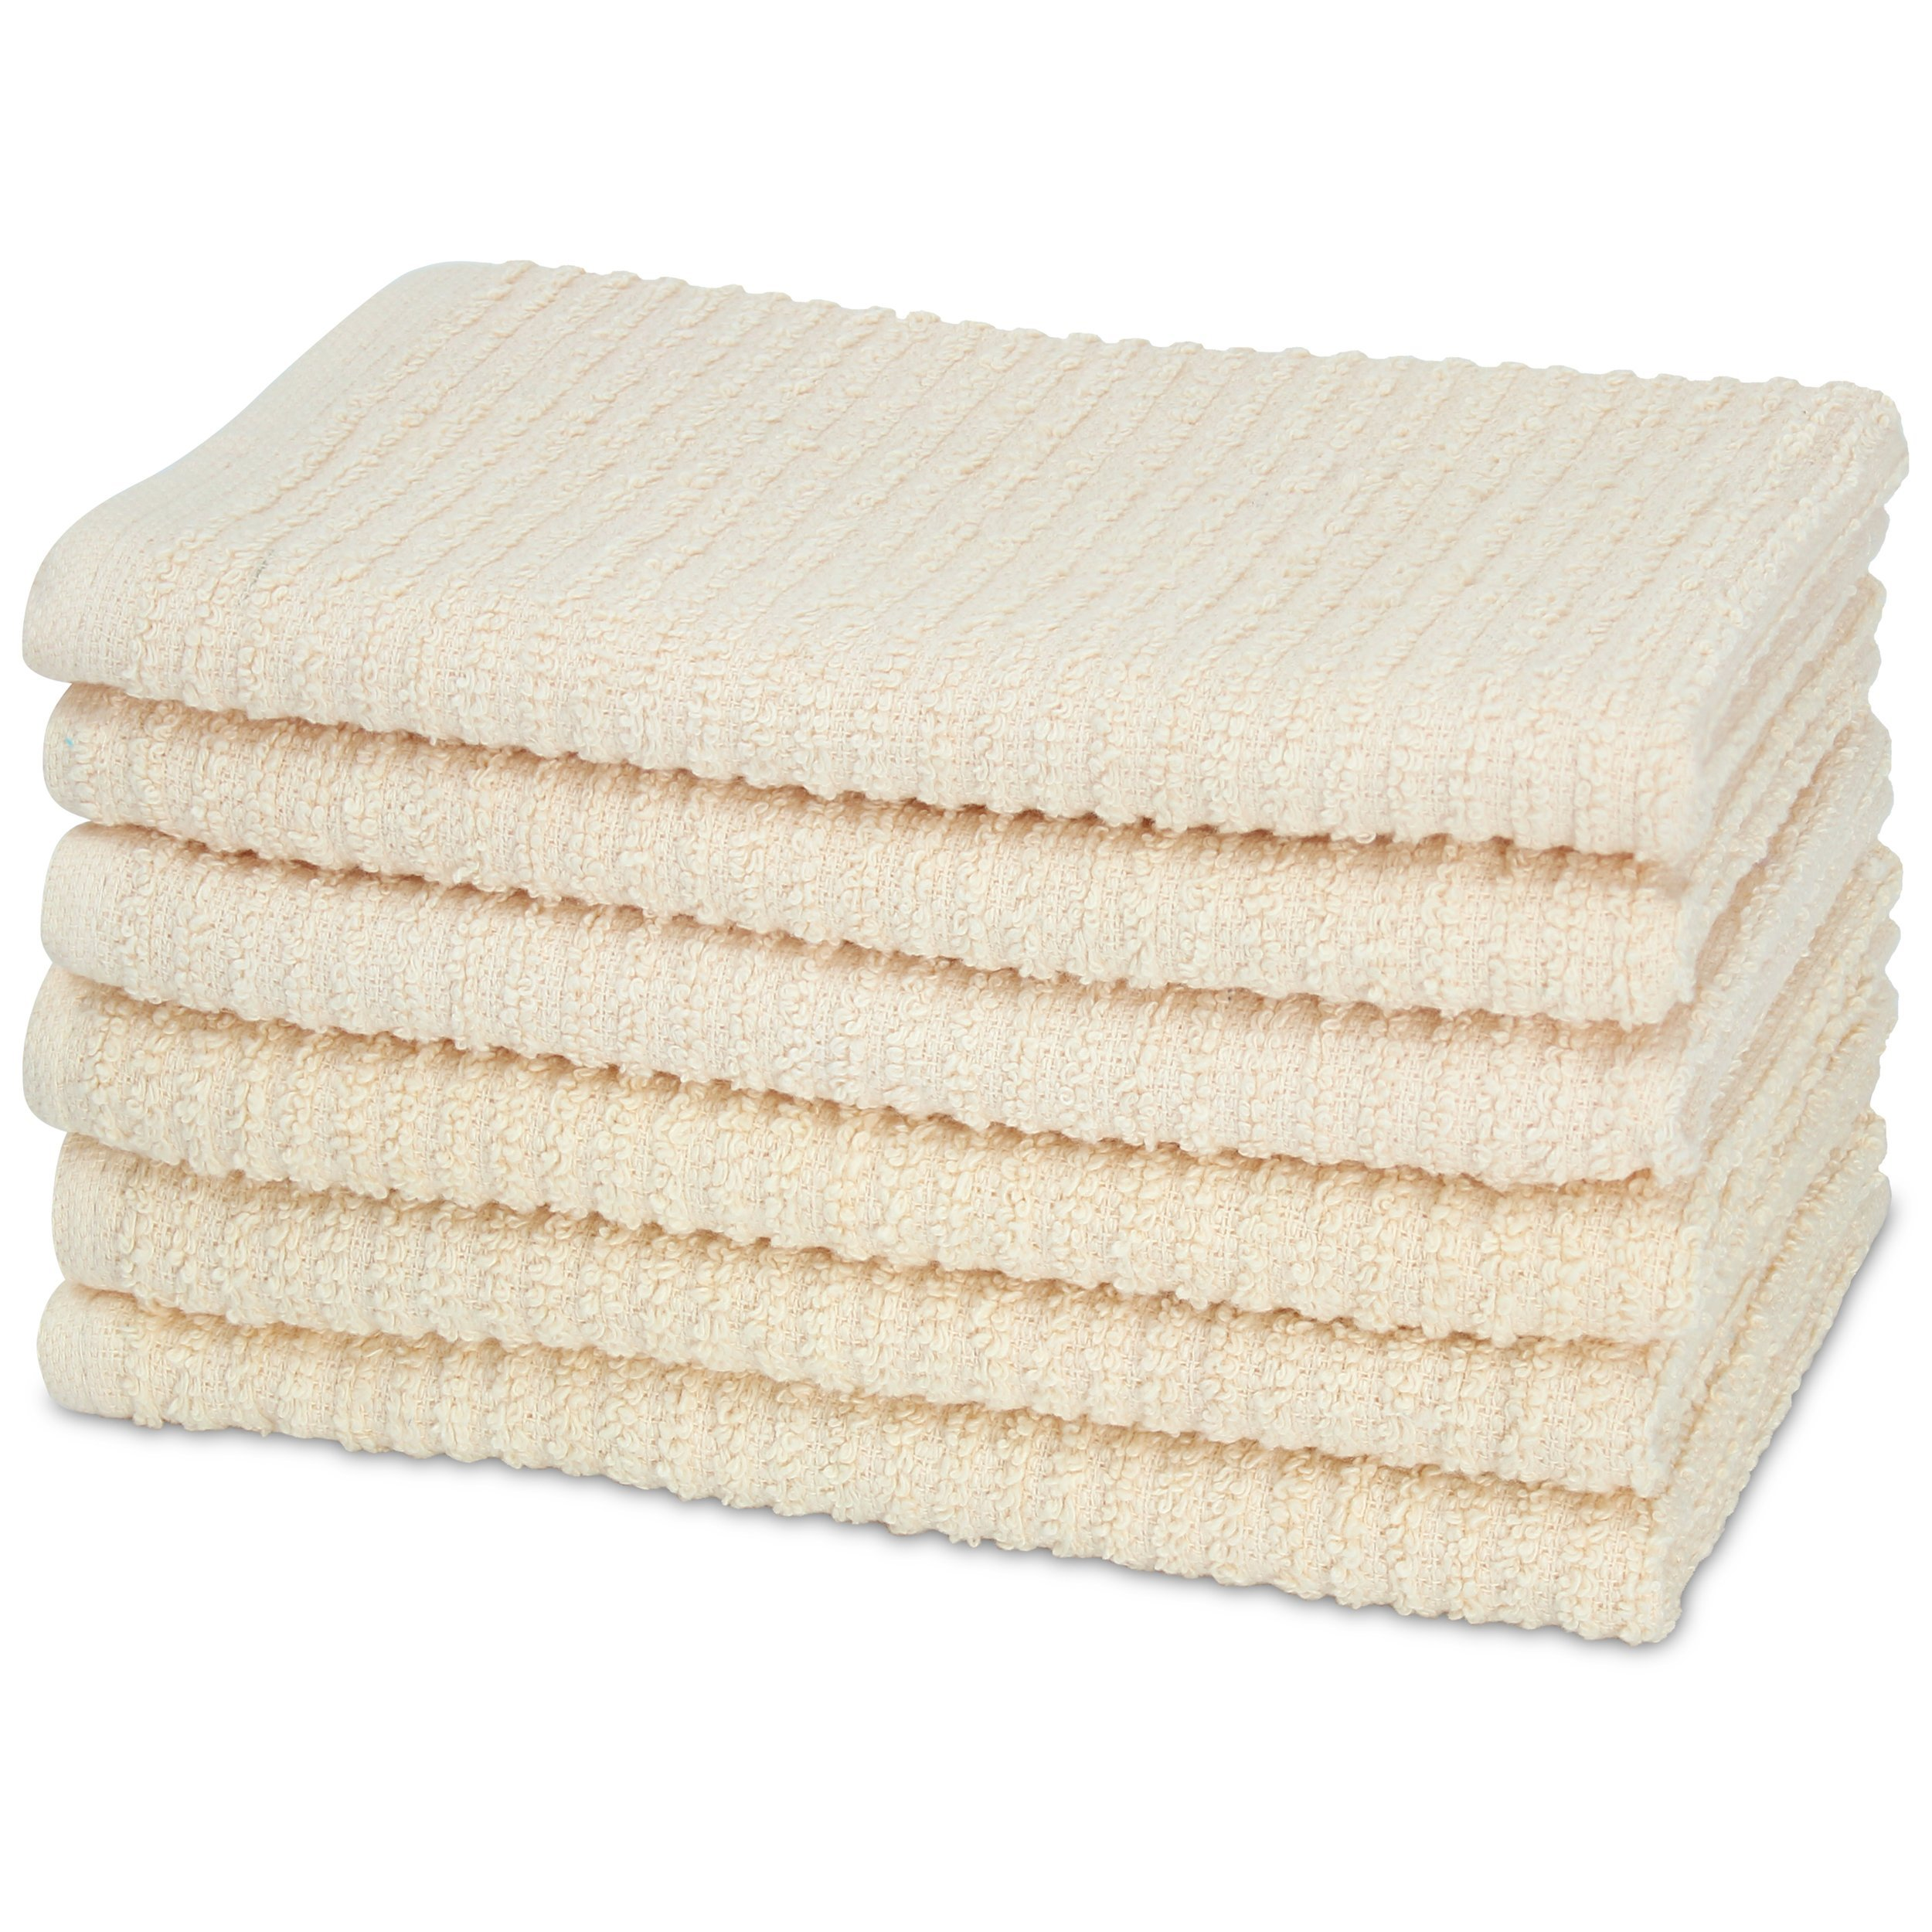 HomeCrate All Purpose Heavy Weight Kitchen Bar Mop Towels, Super Absorbent 100% Cotton - 16'' x 19'', Set of 6, Ivory